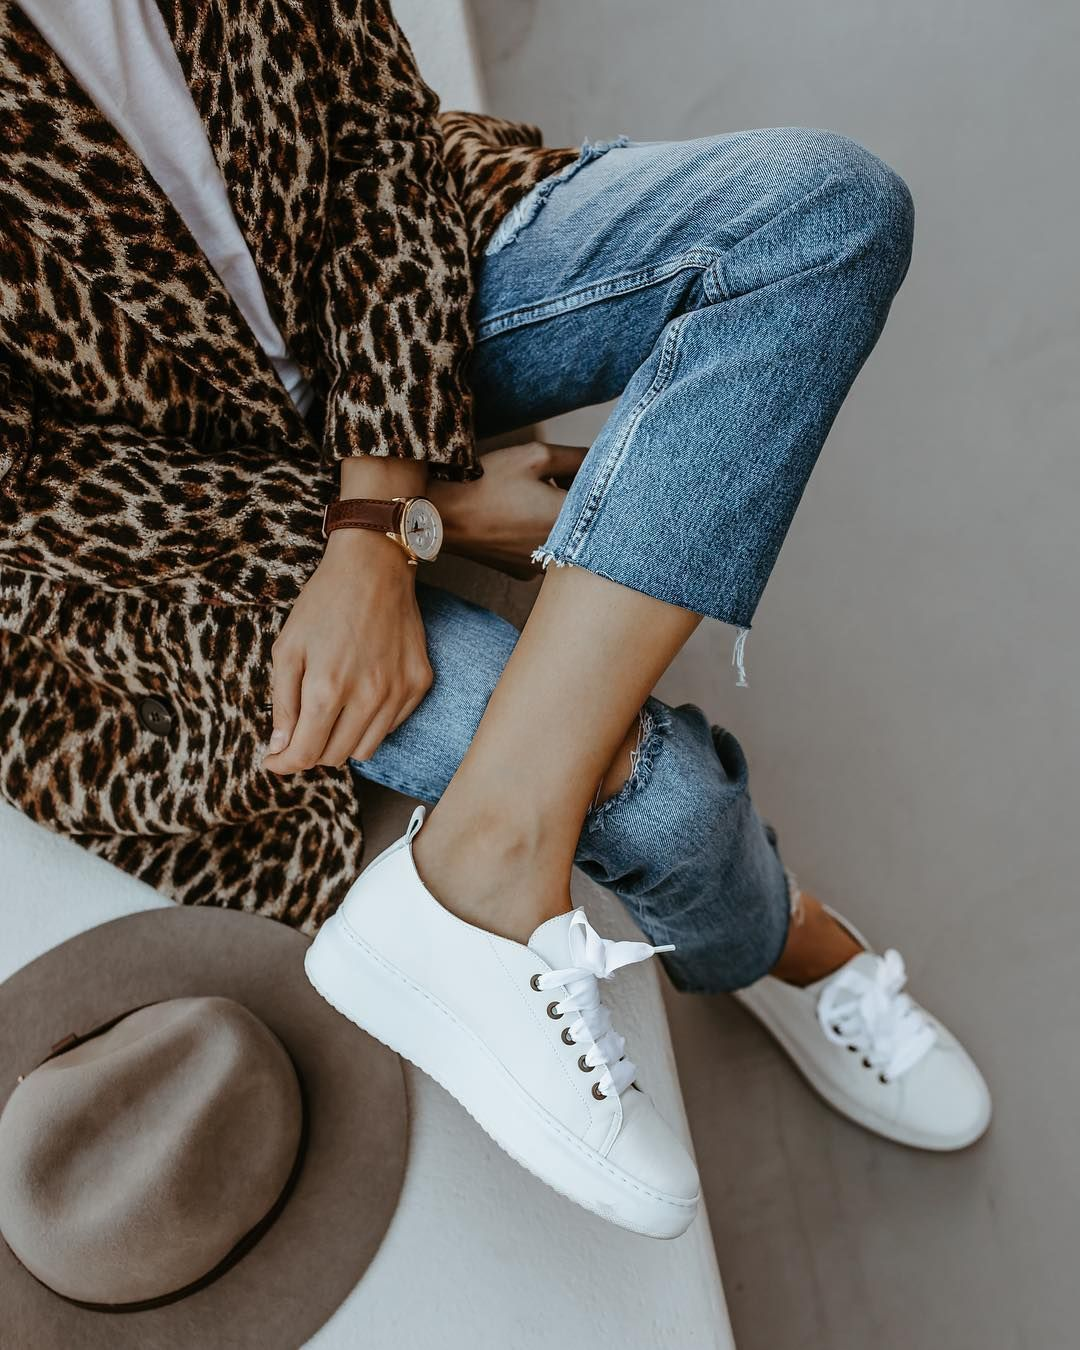 60d531a1 leopard print, white sneakers #Sneakers | Sneakers in 2019 | White ...